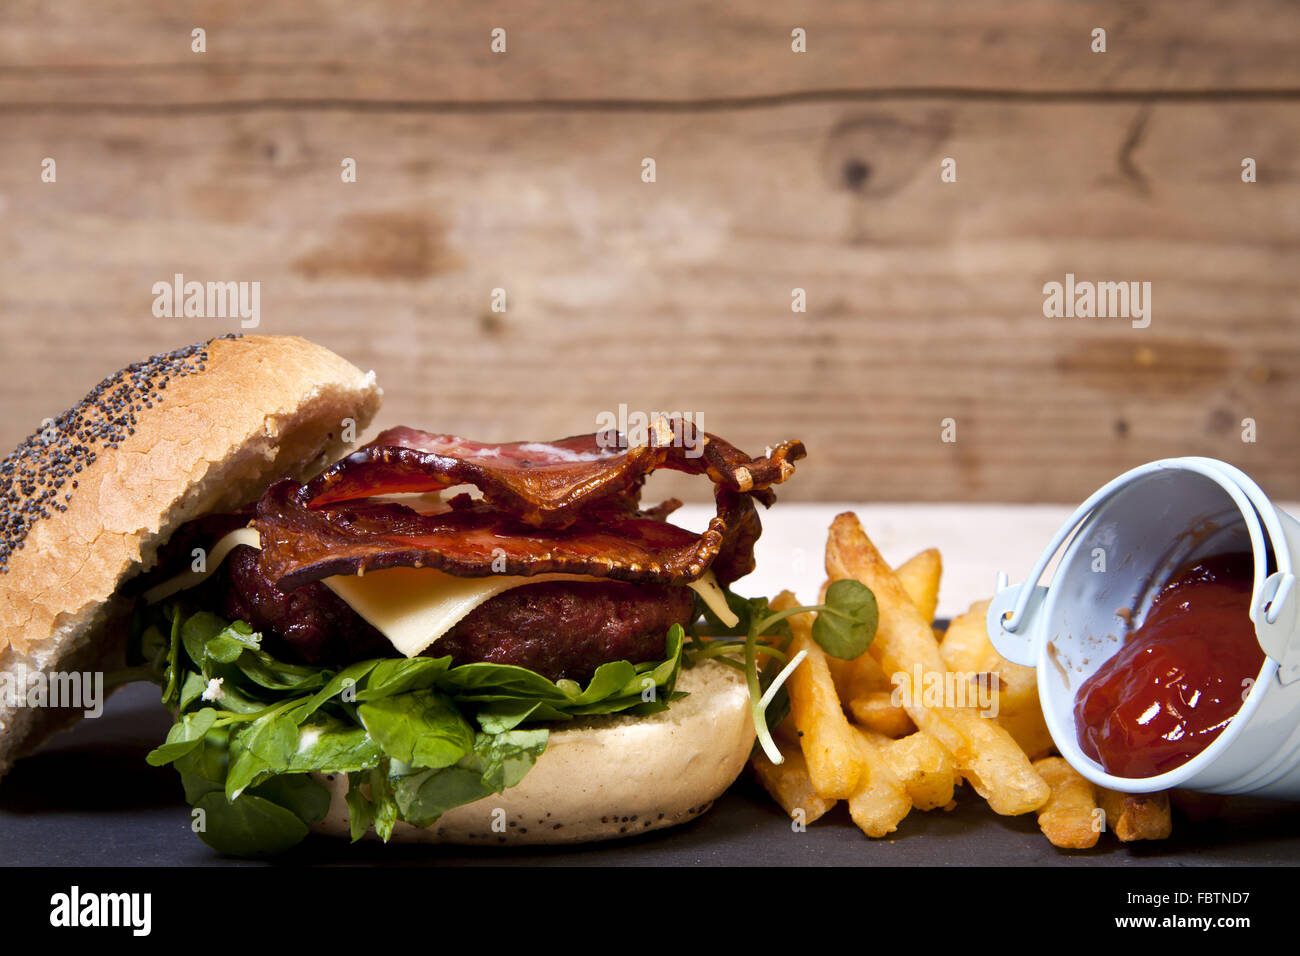 Home made bacon and cheese burger - Stock Image